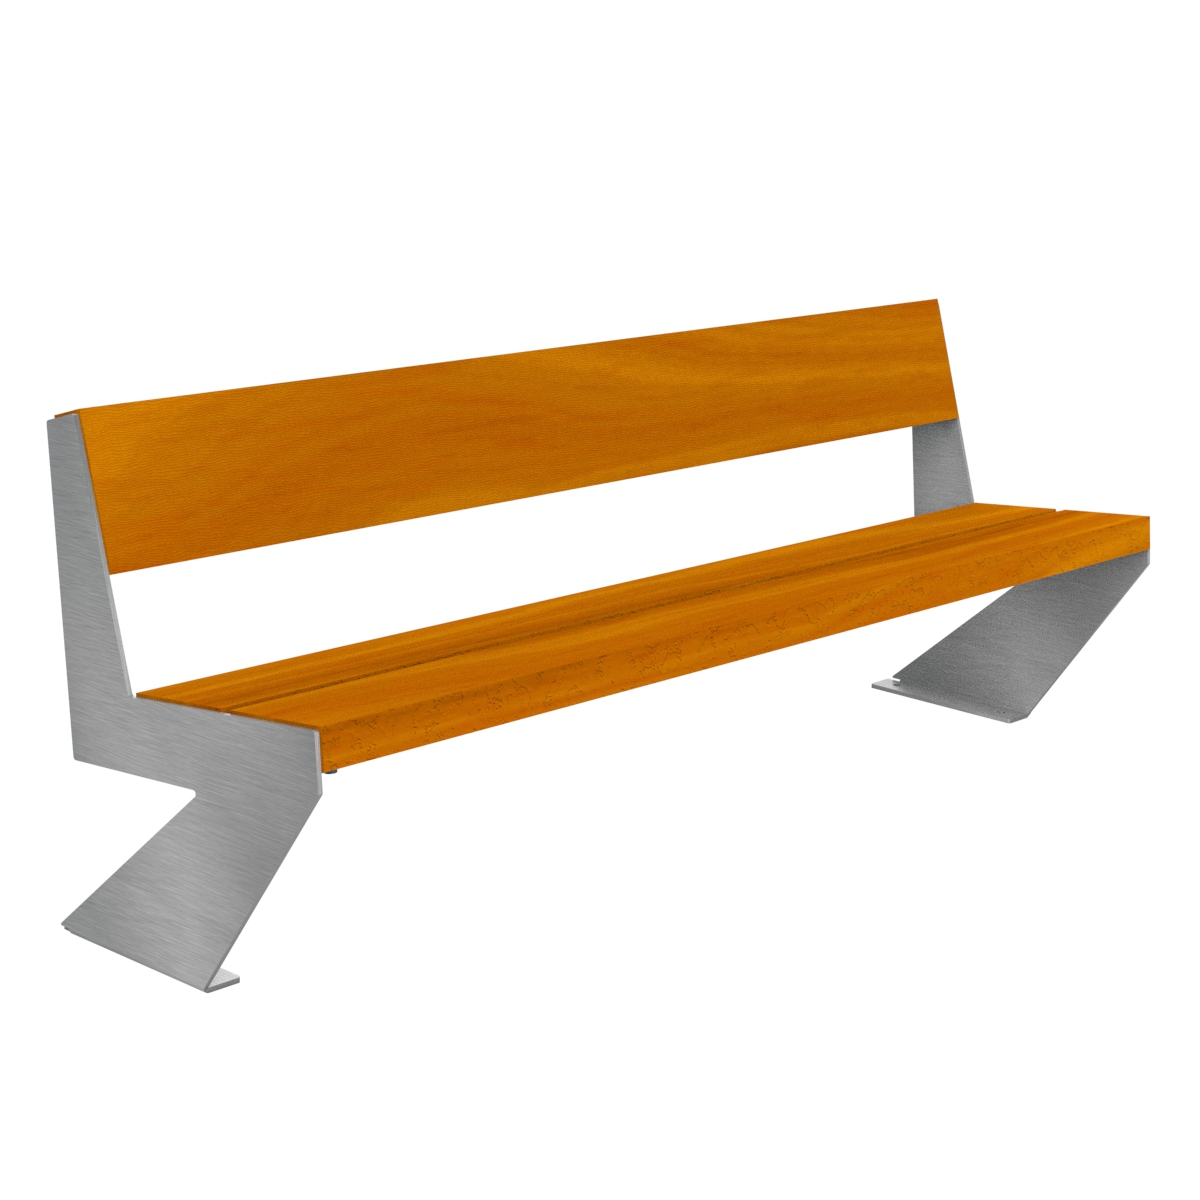 Zenit Wood Bench stainless legs urban furniture parks and gardens